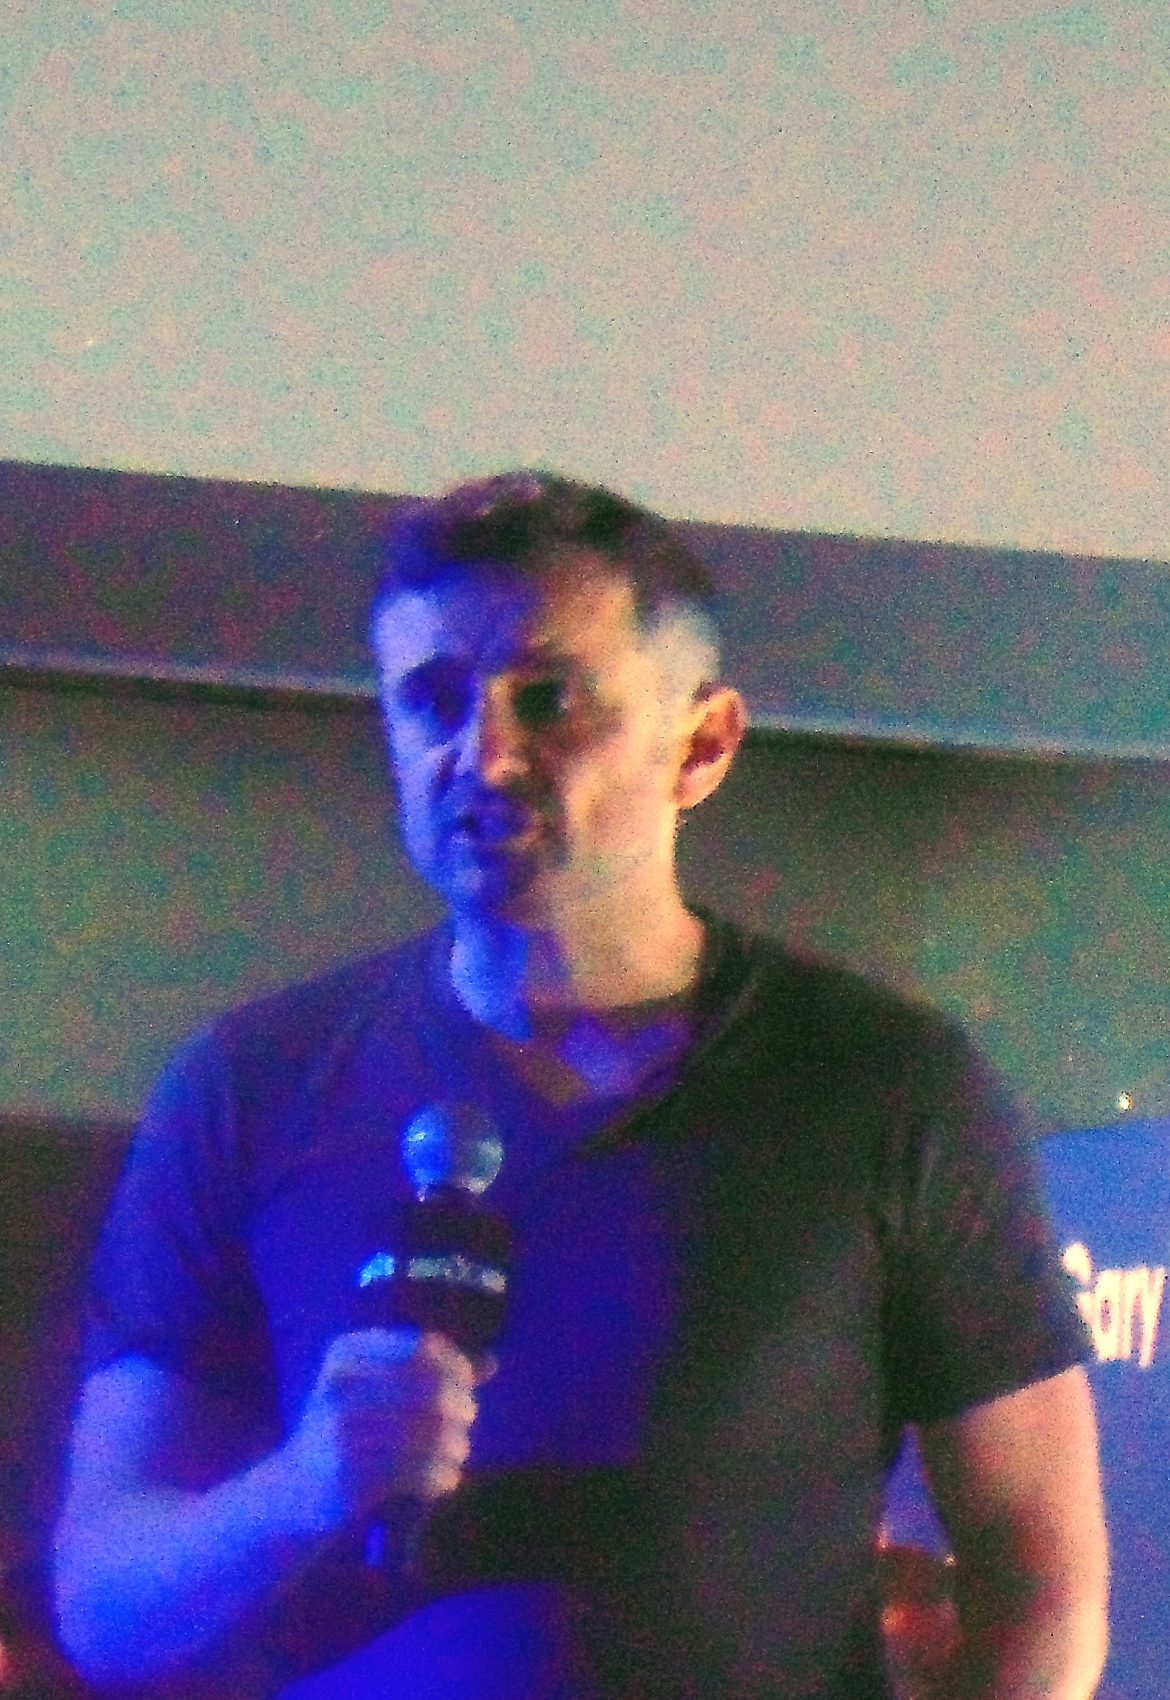 Motivational Speaker Gary Vee talks about Underpriced Attention and being Selfless, not Selfish